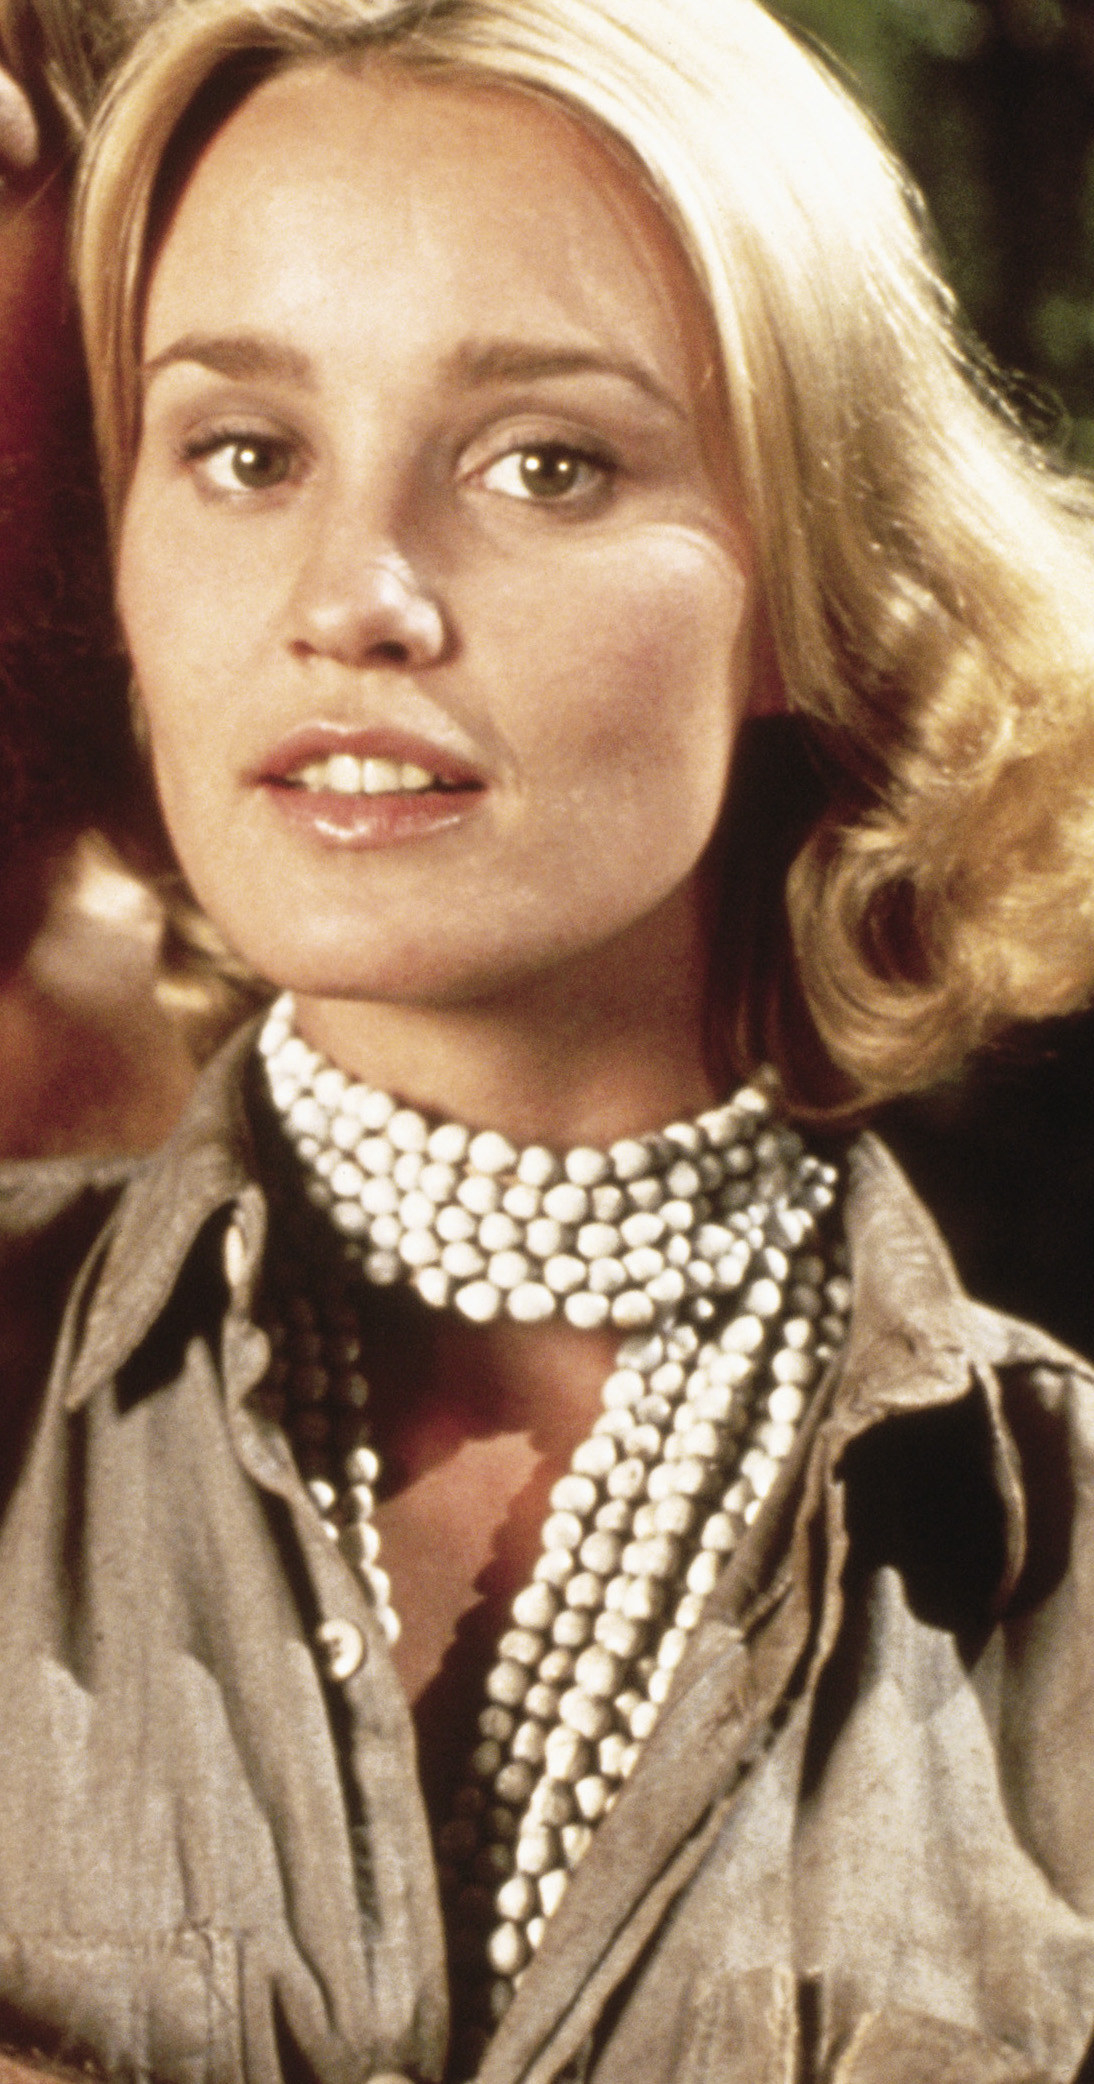 Jessica Lange with short curly hair while wearing long pearls